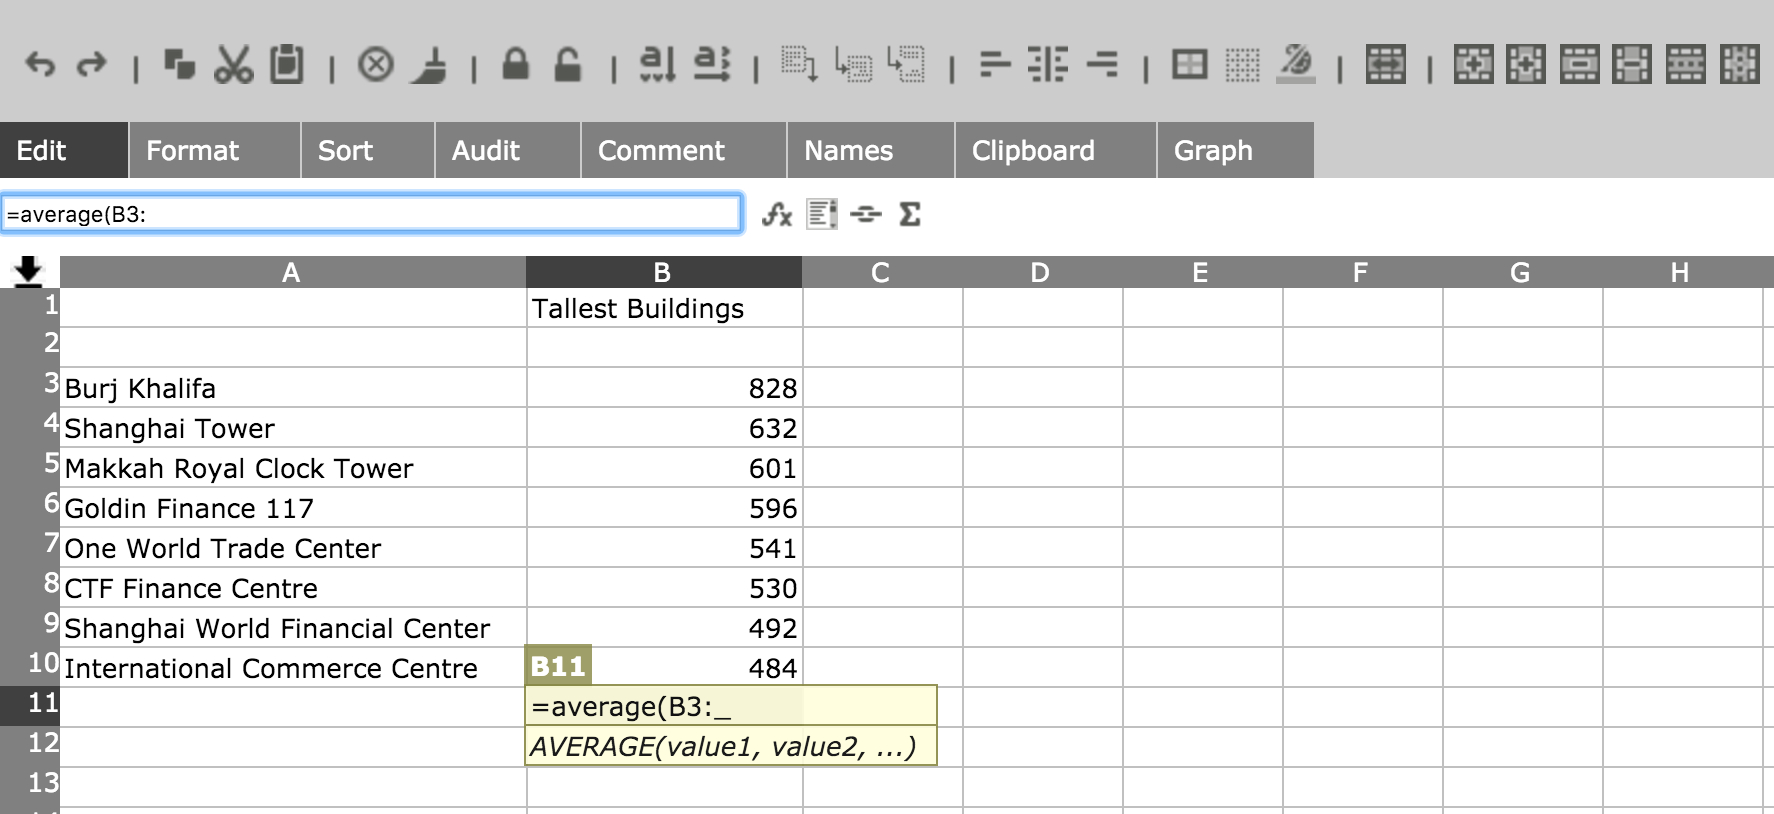 From Visicalc To Google Sheets: The 12 Best Spreadsheet Apps For Online Spreadsheet Collaboration